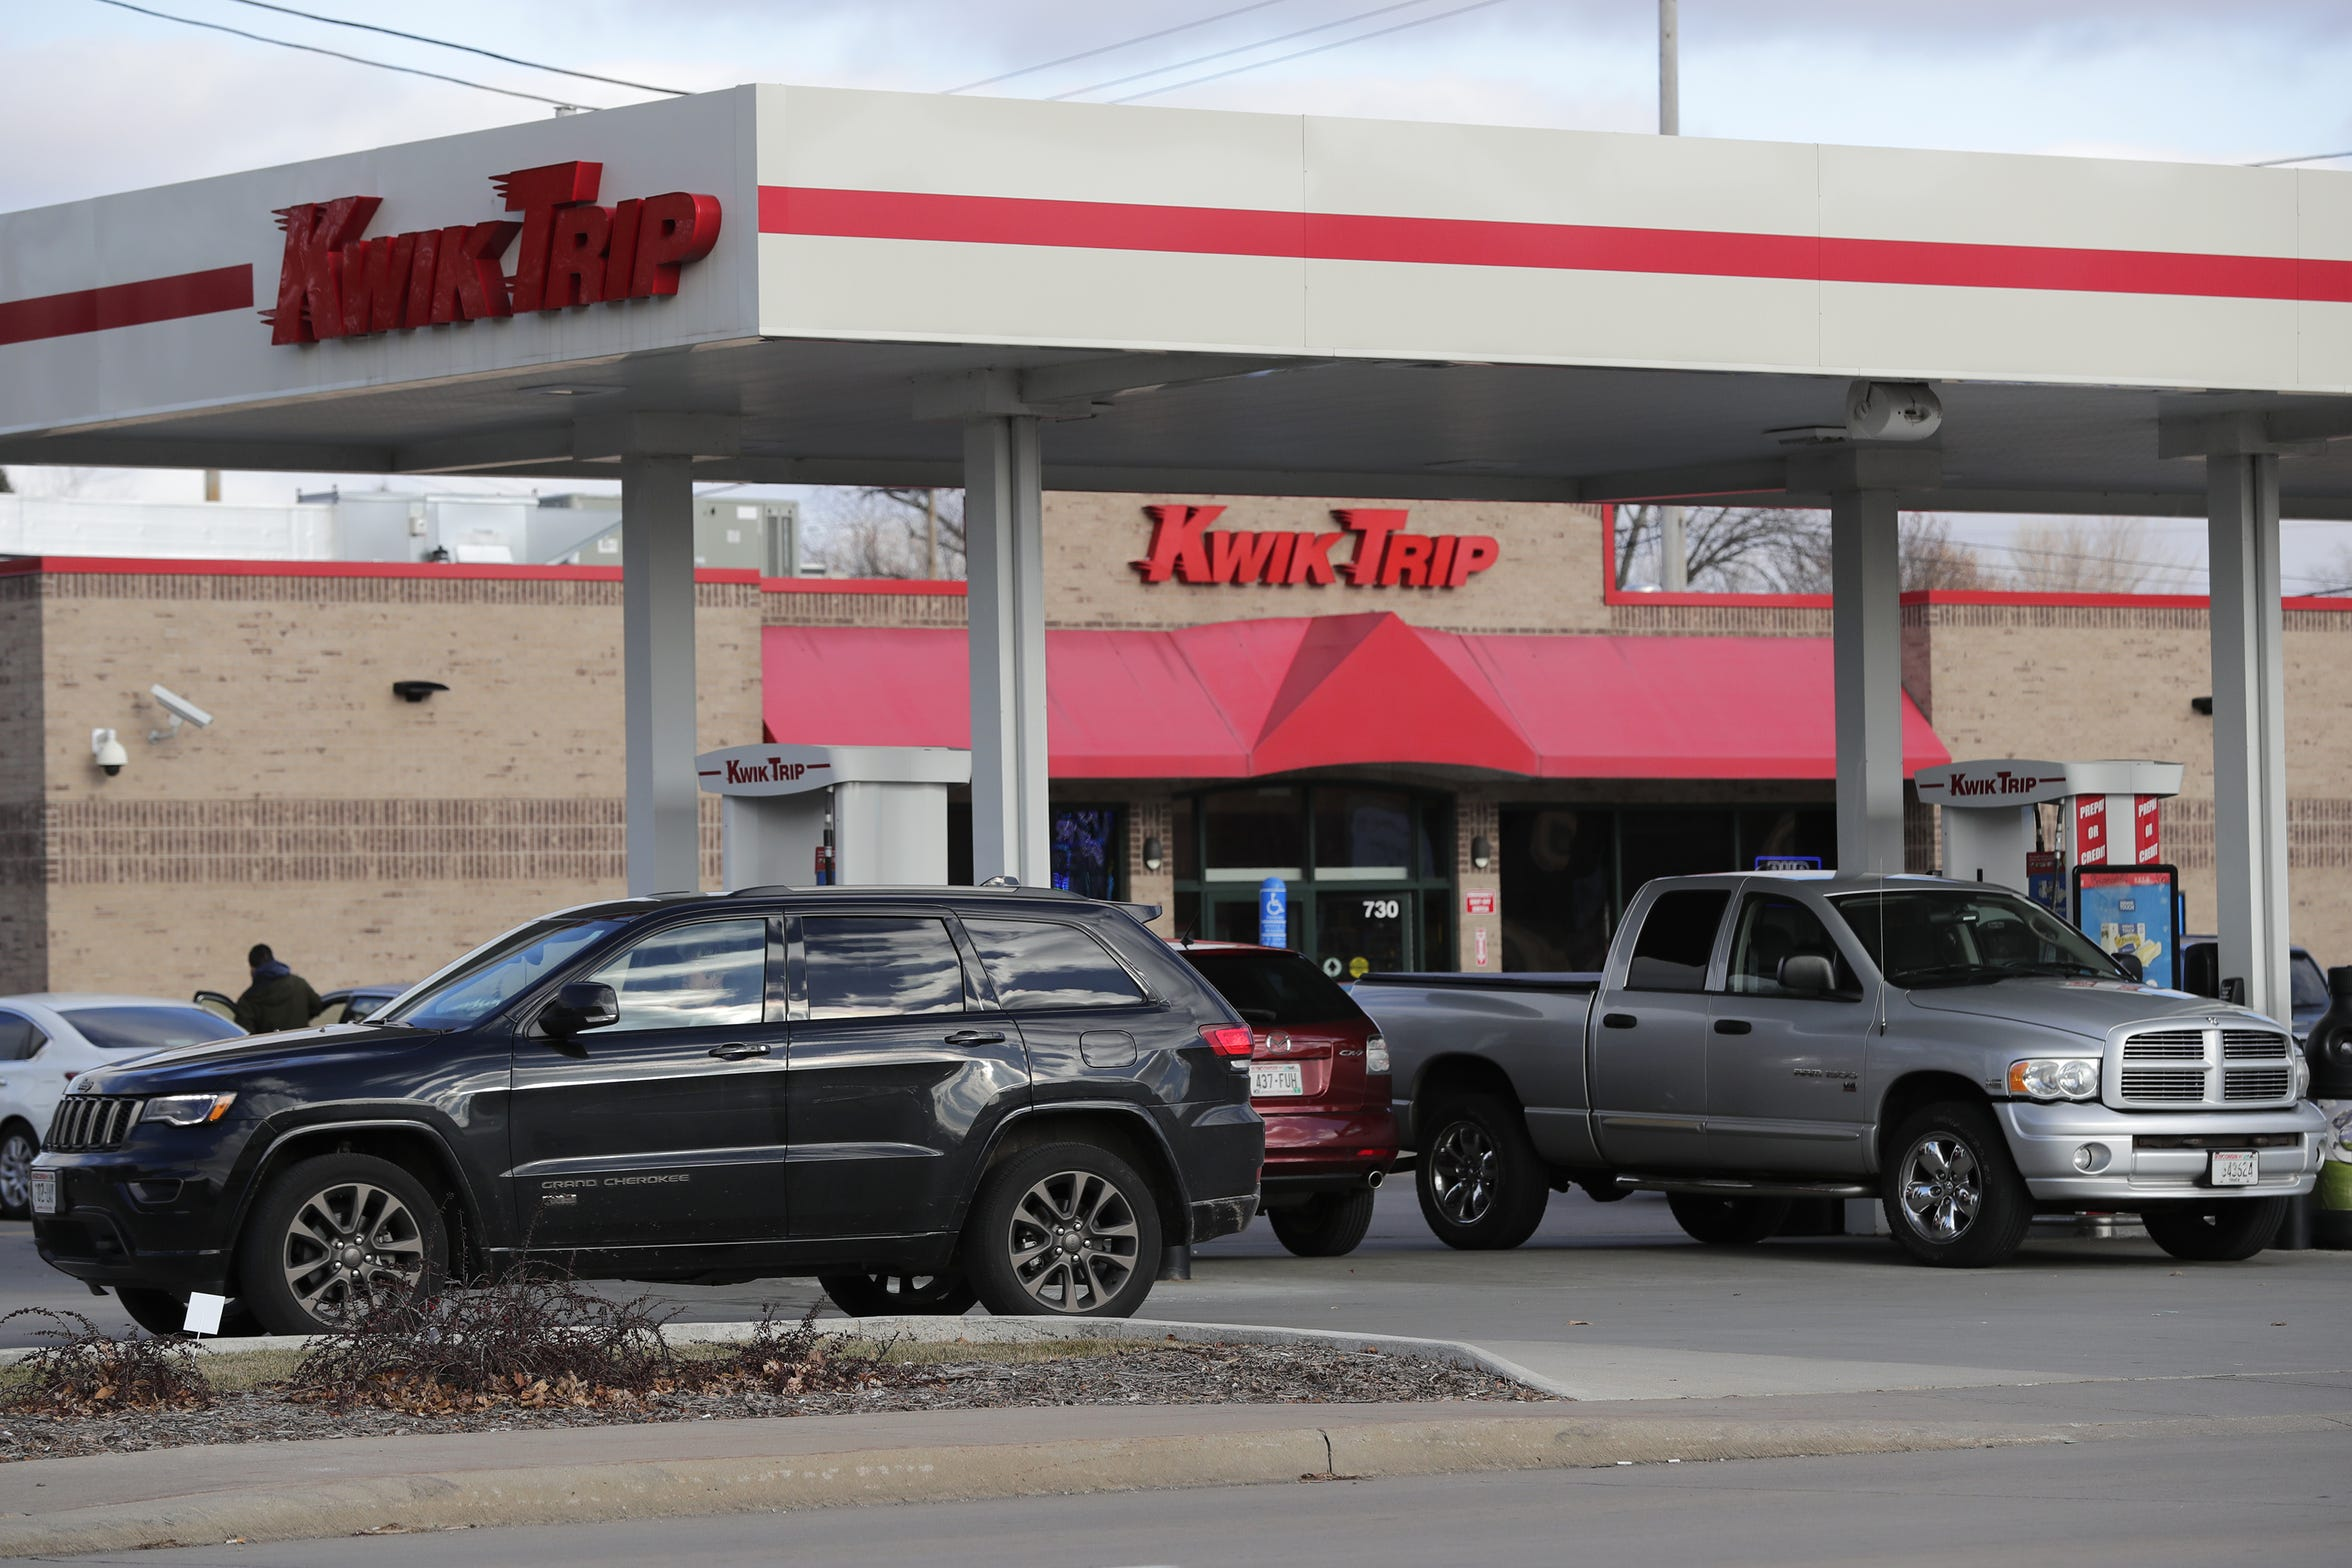 The Kwik Trip located at 730 East Wisconsin Avenue is a buzz of activity Wednesday, Nov. 28, 2018, in Appleton.